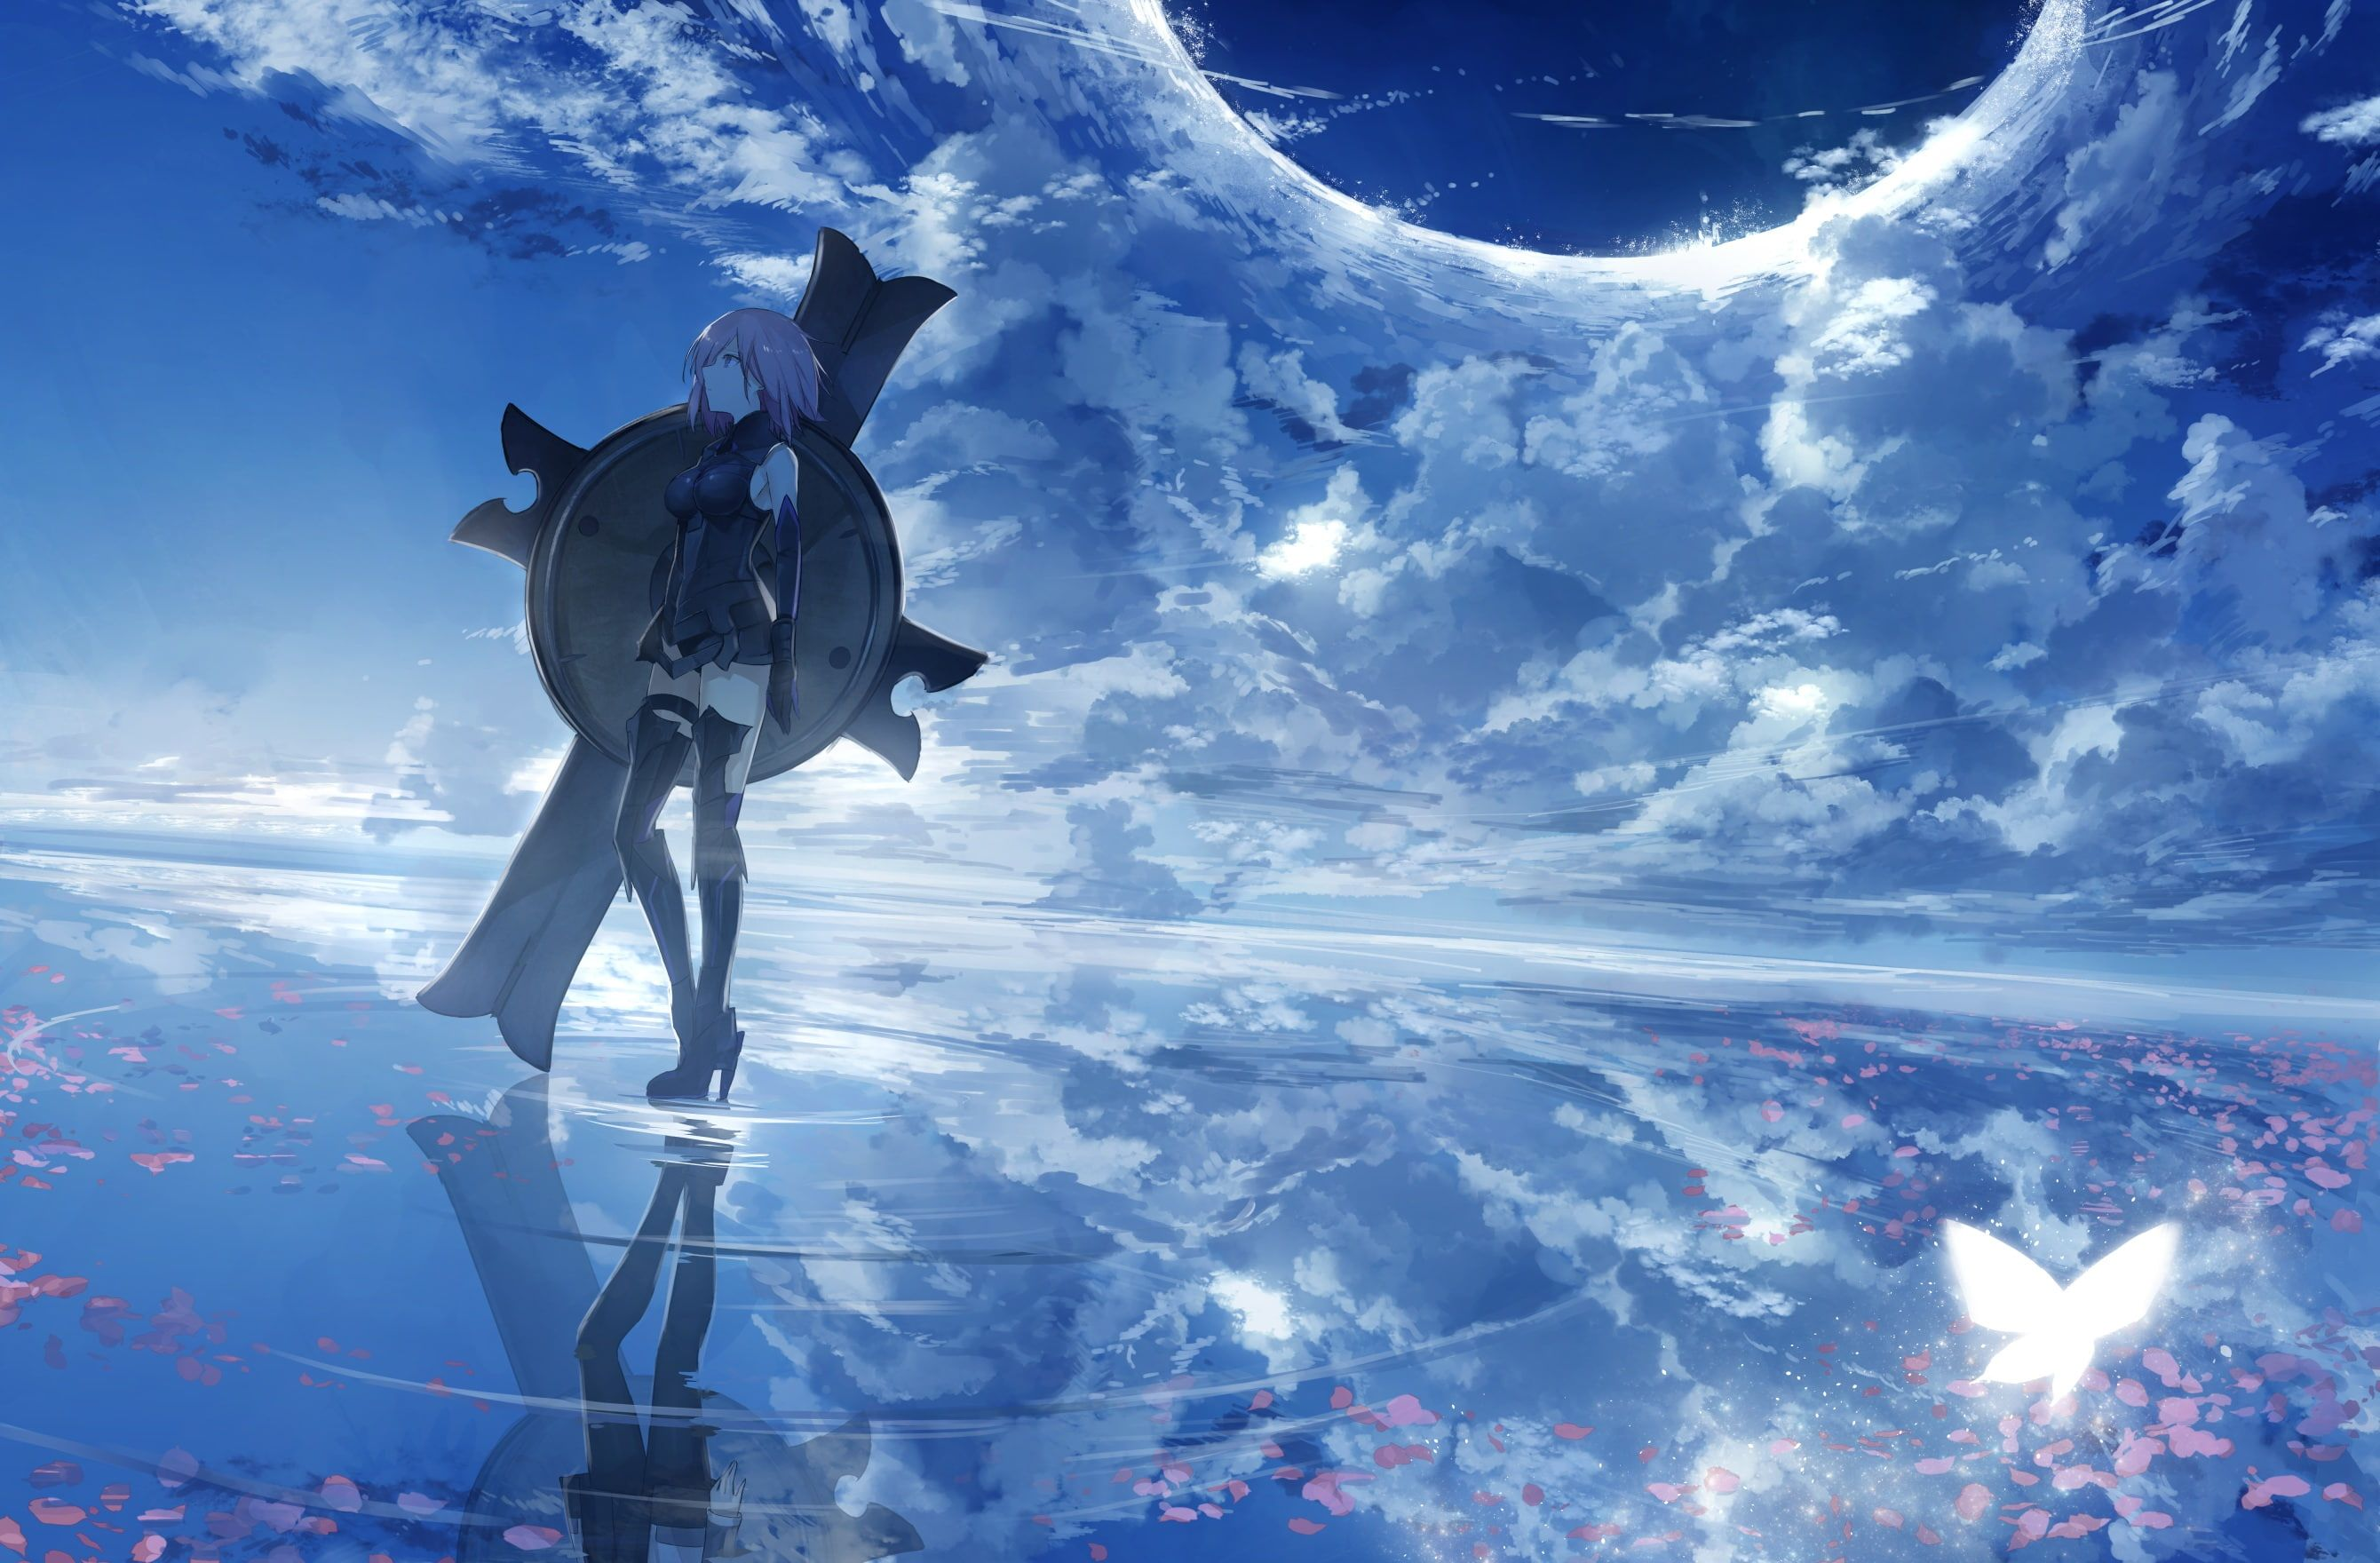 Anime Girls Anime Anime Grasoso Sky Fantasy Girl Reflection